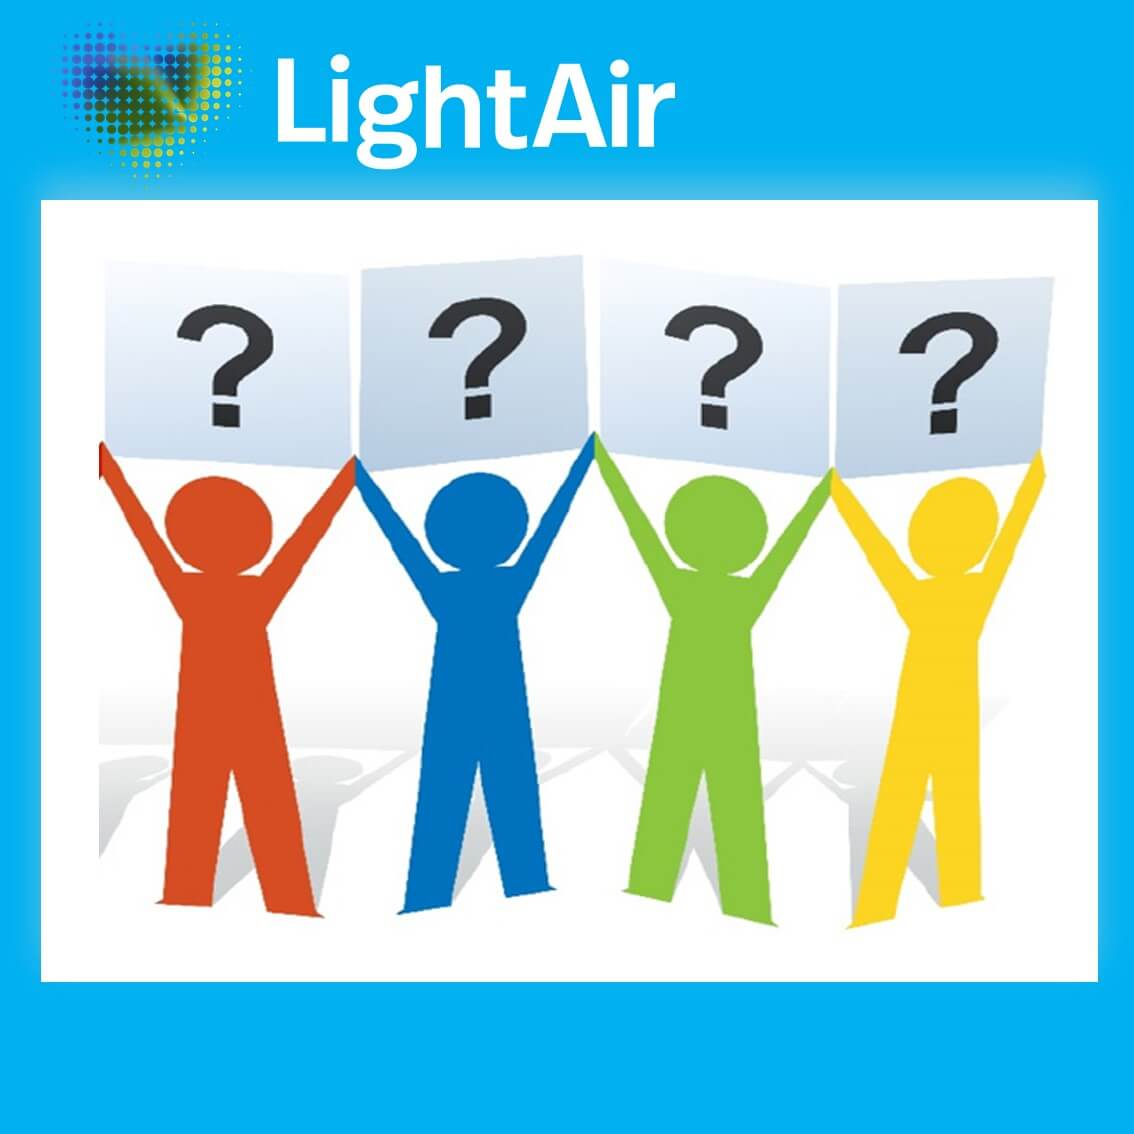 Lightair Faq's - frequently asked questions